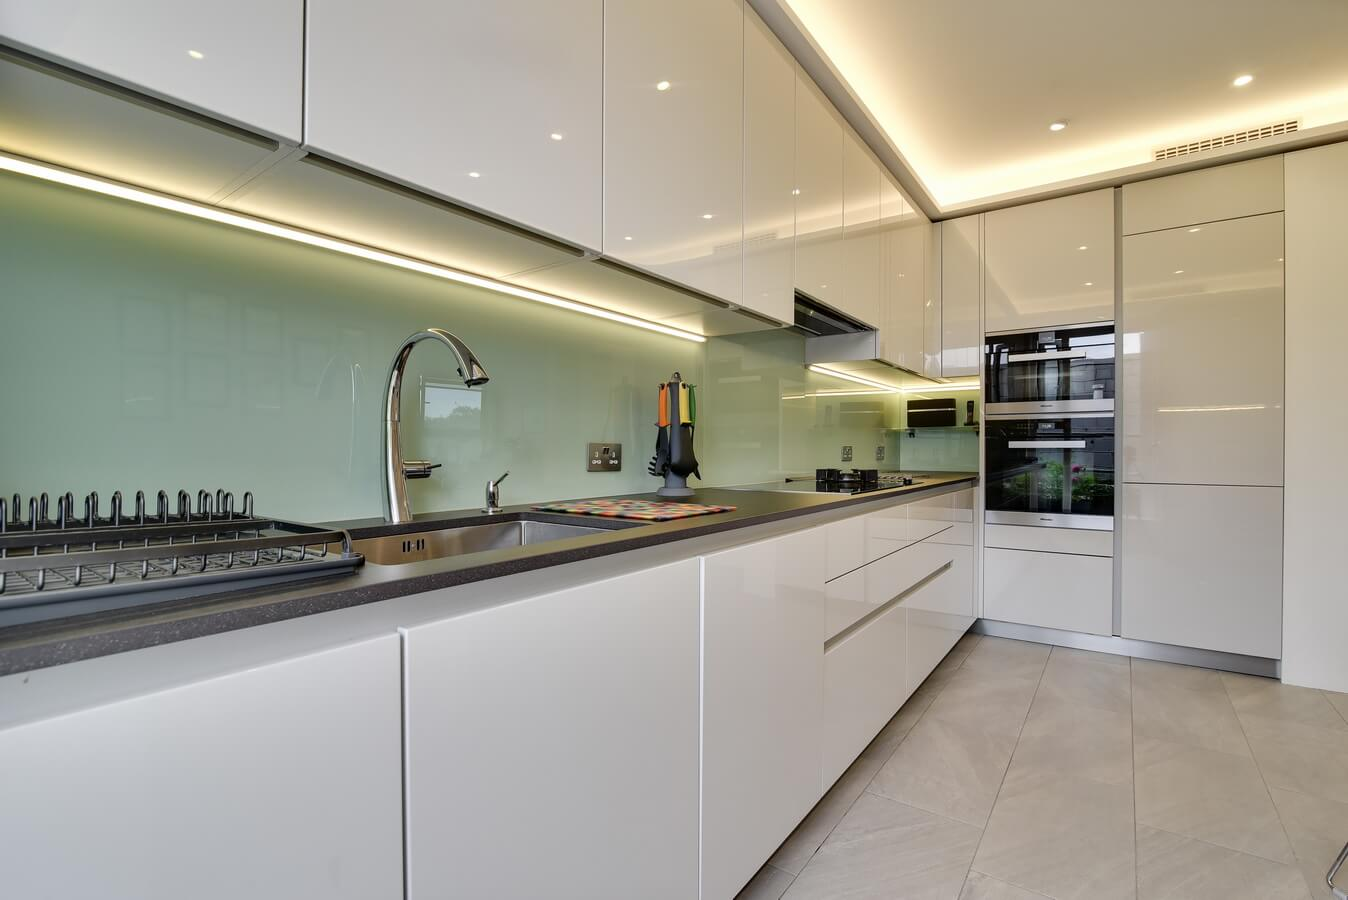 Kitchen-Units-With-Glass-Splashback-LED-strip.jpg